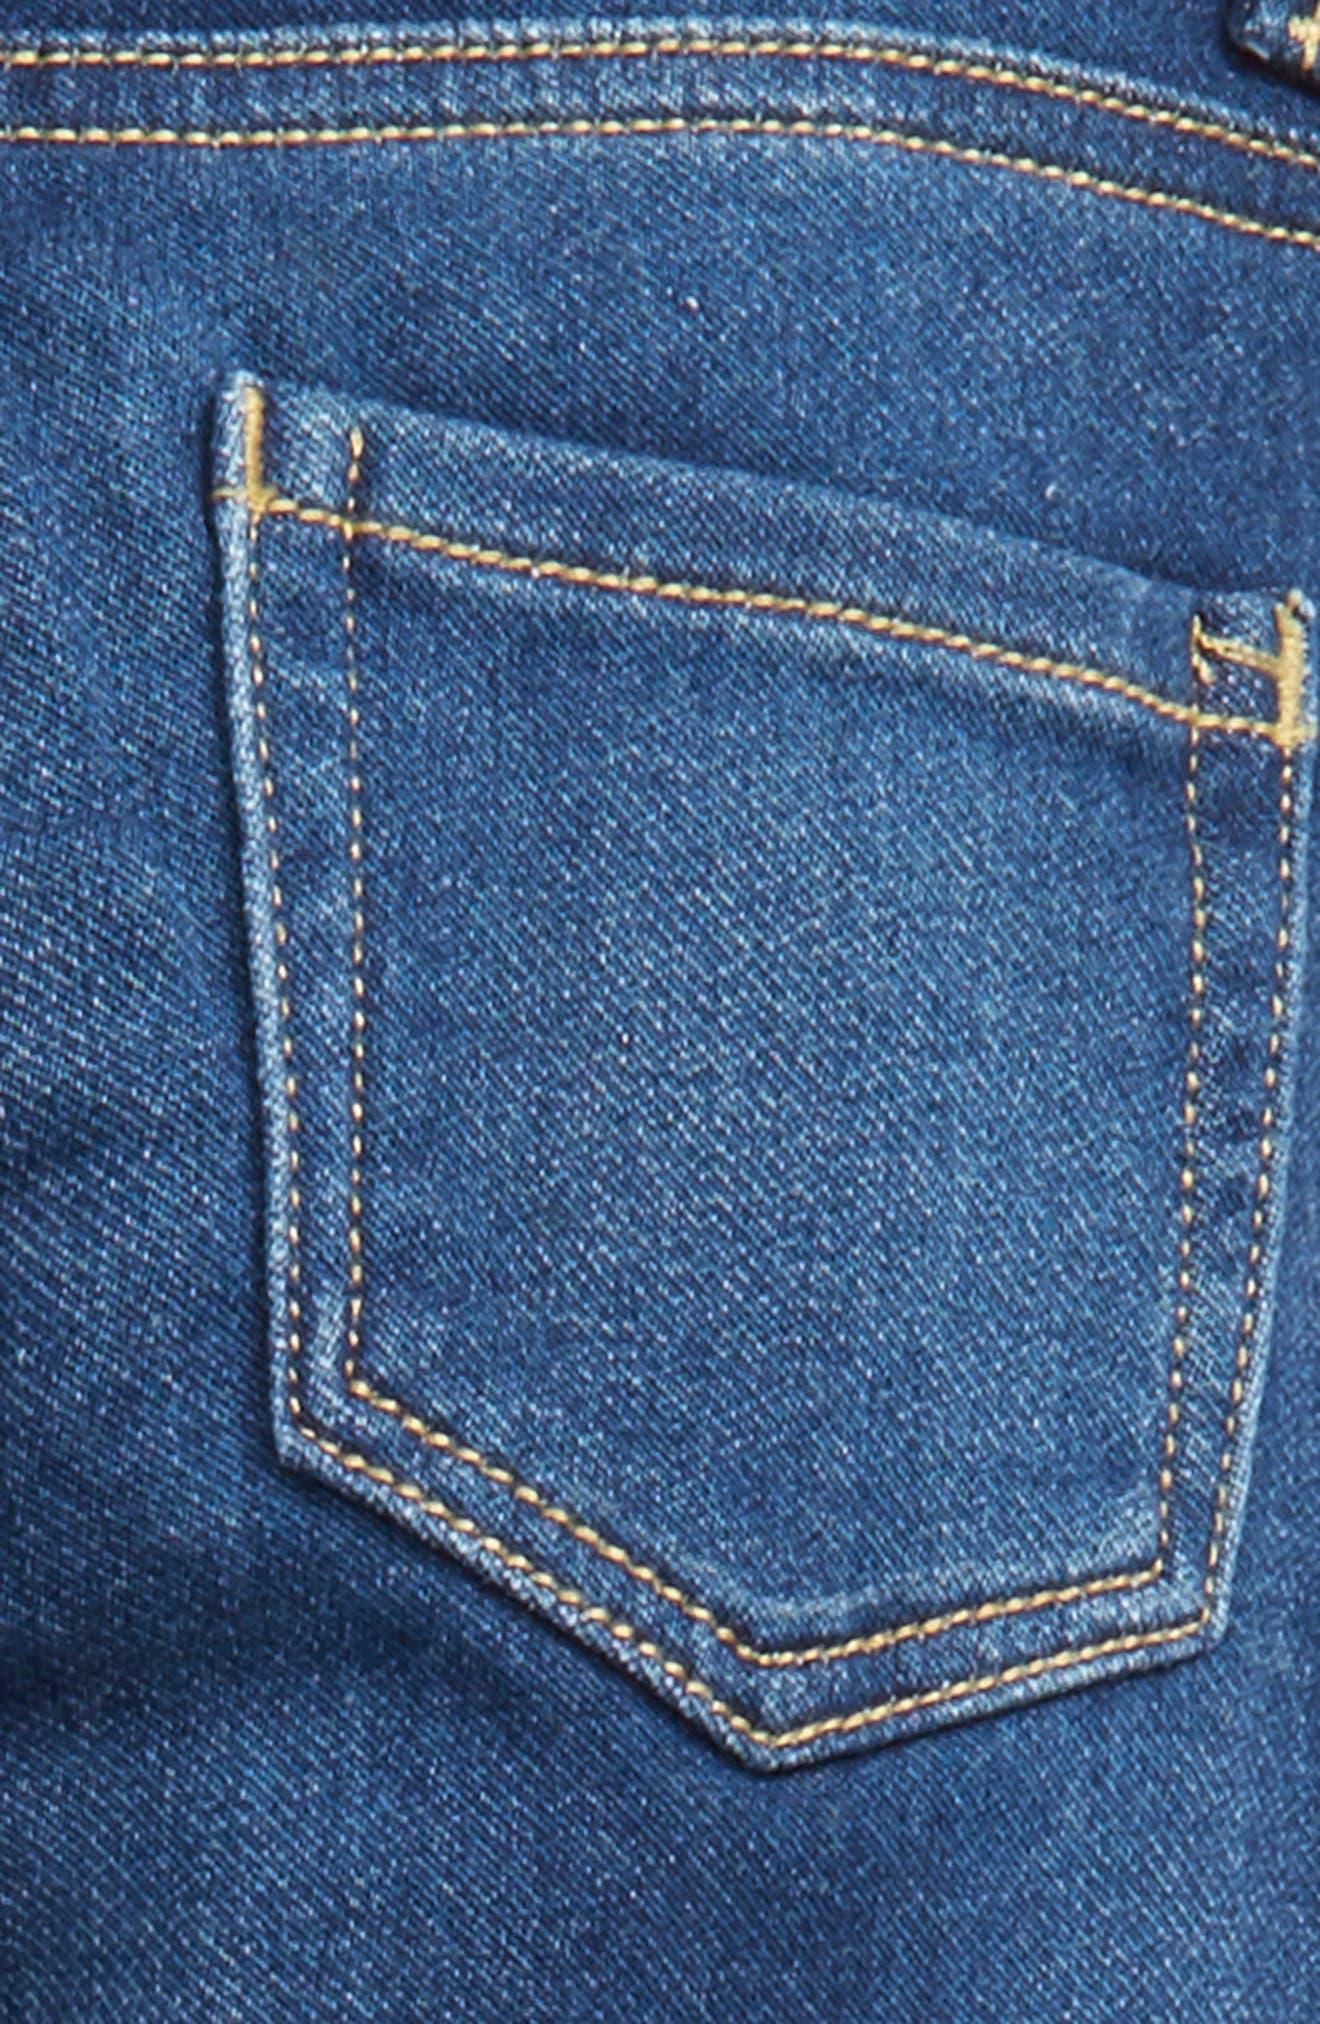 Taylor Skinny Jeans,                             Alternate thumbnail 3, color,                             Med Authentic